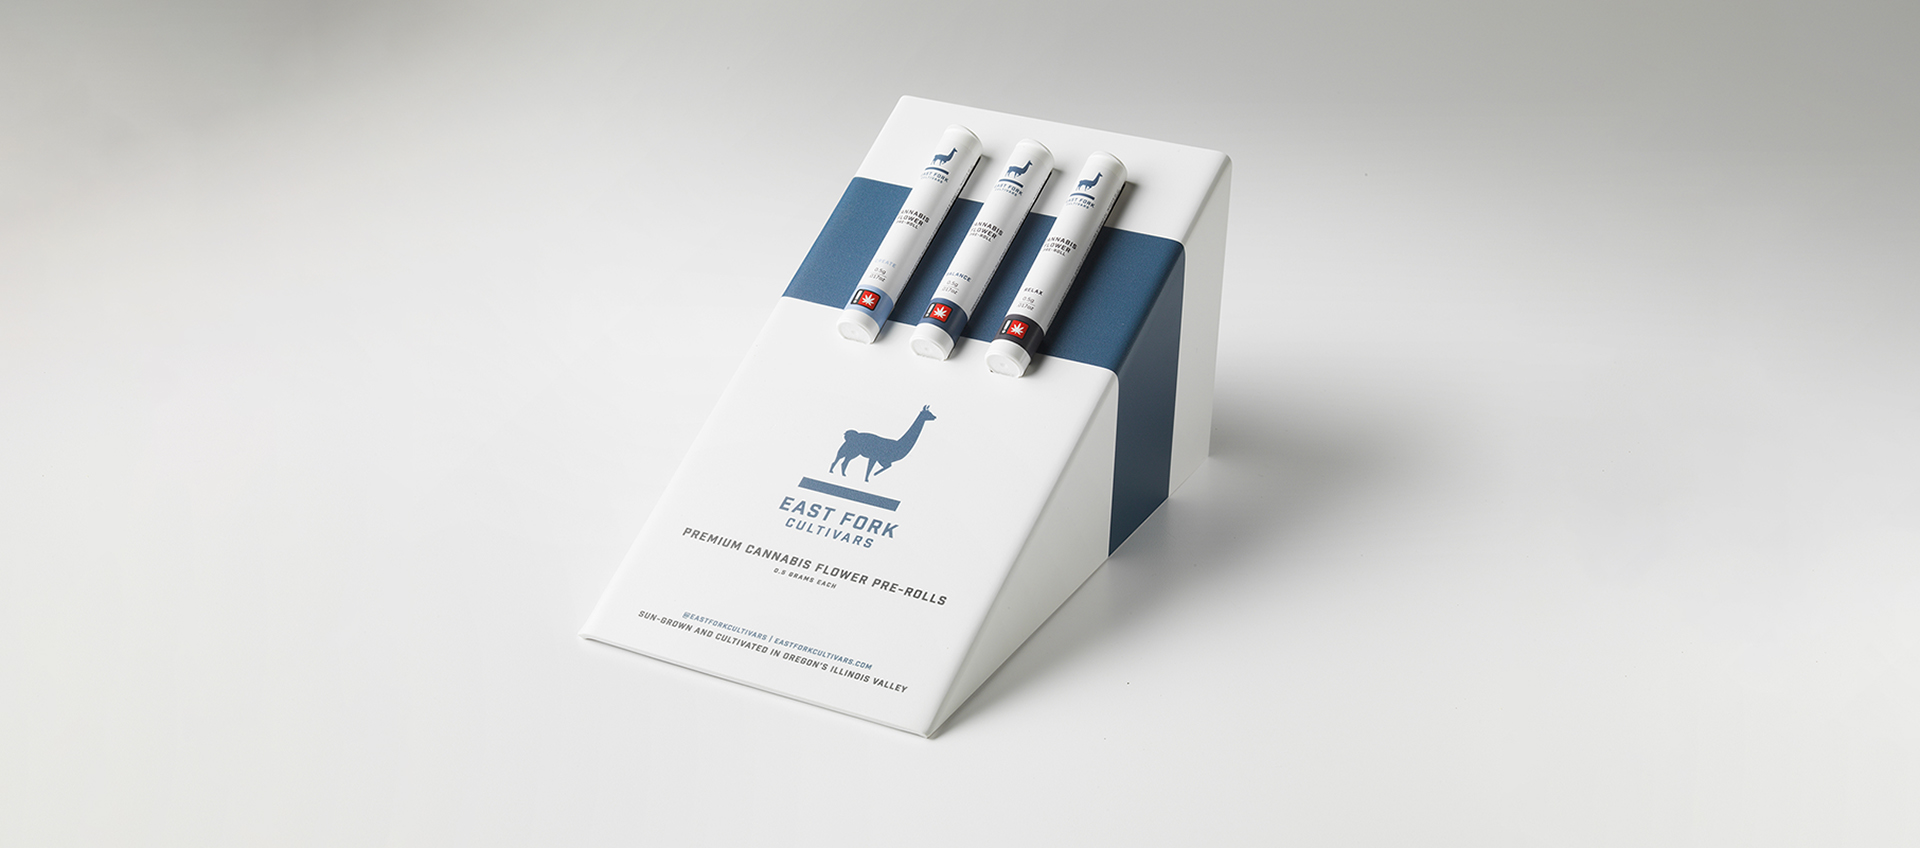 A blue and white angled display box of three East Fork pre-rolls, Create, Balance, and Relax strains.